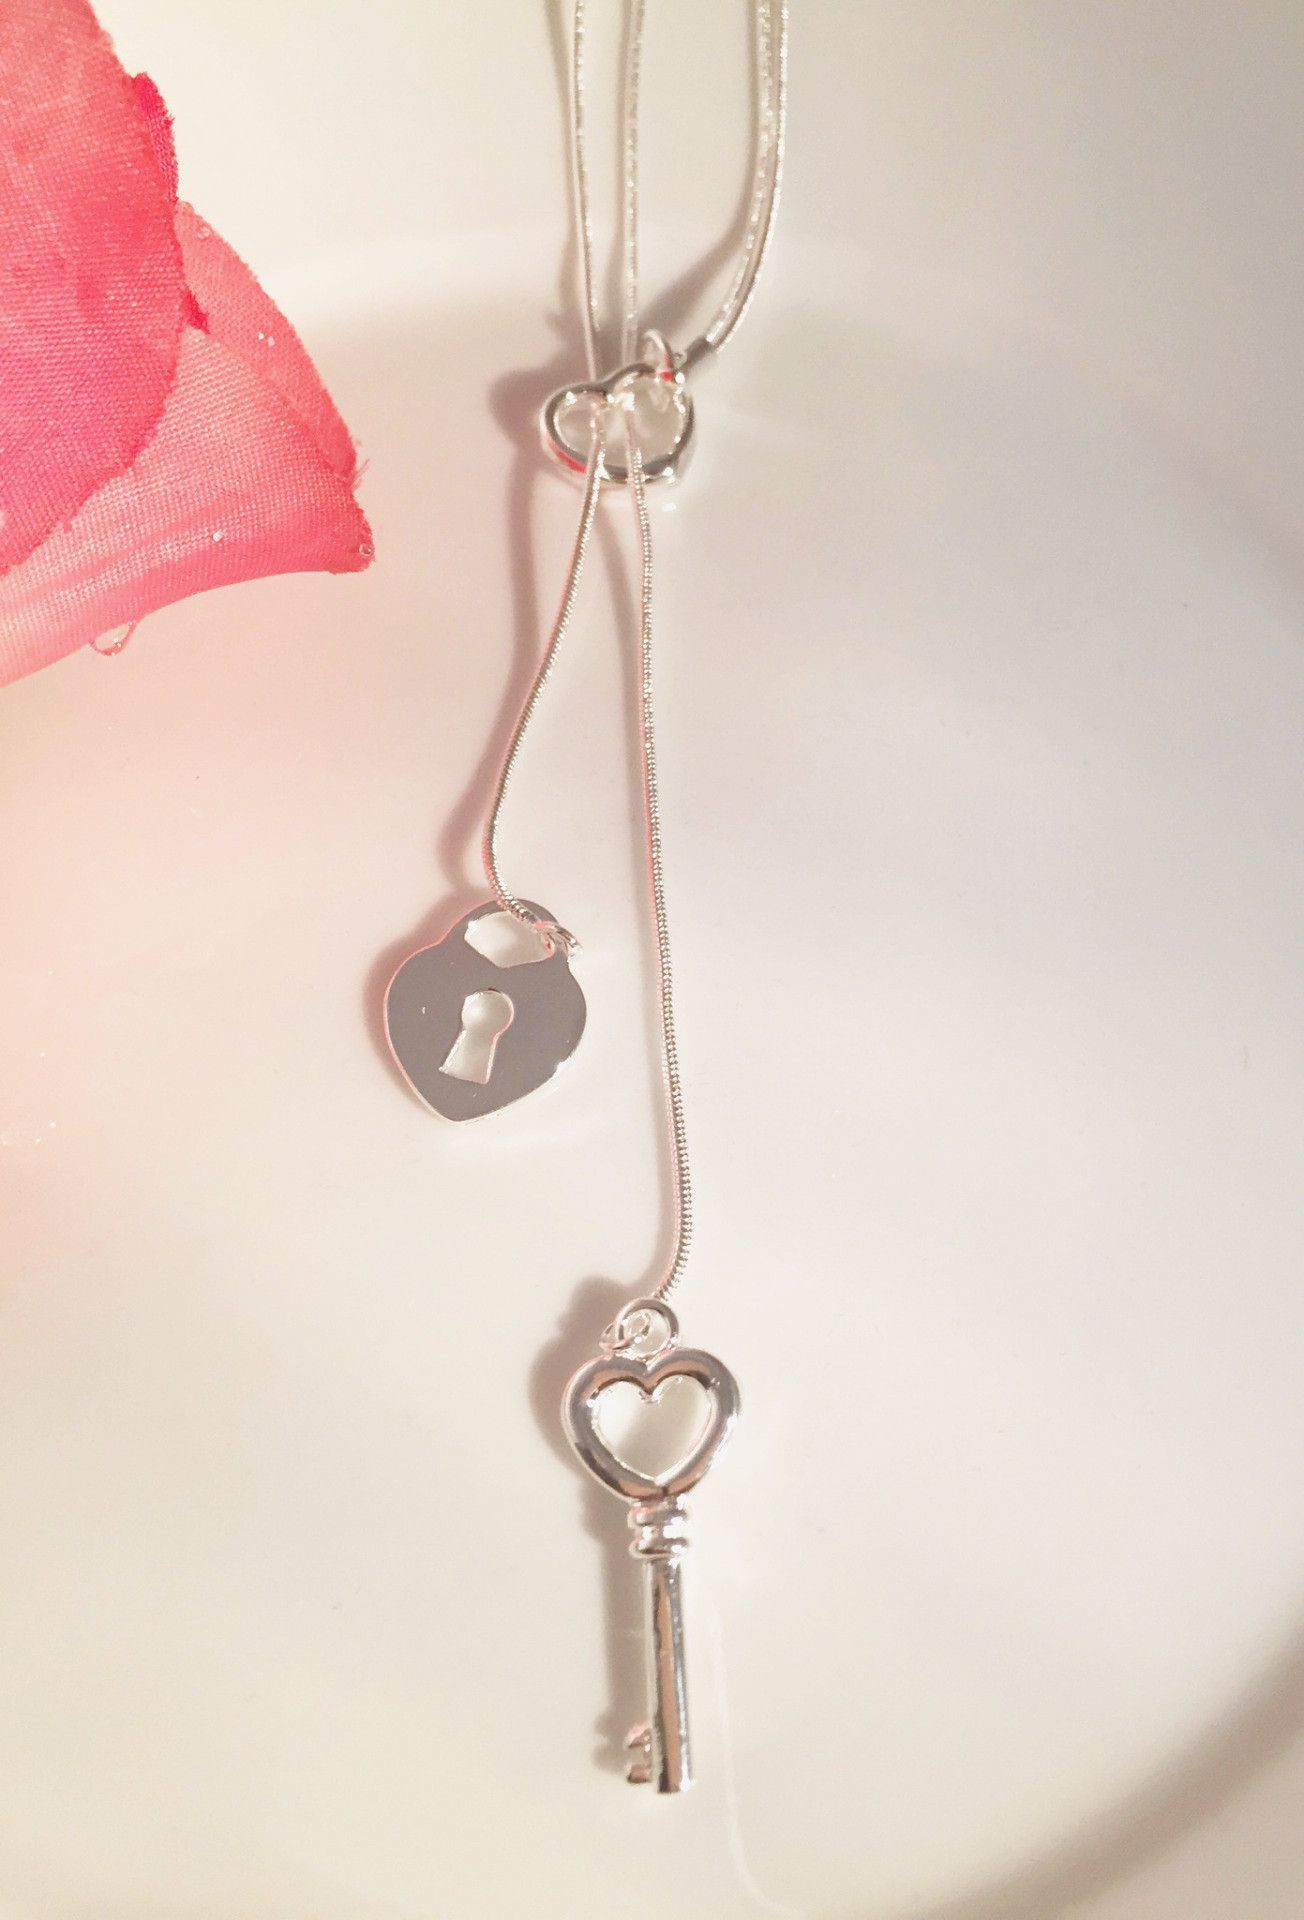 Heart and Lock Necklace